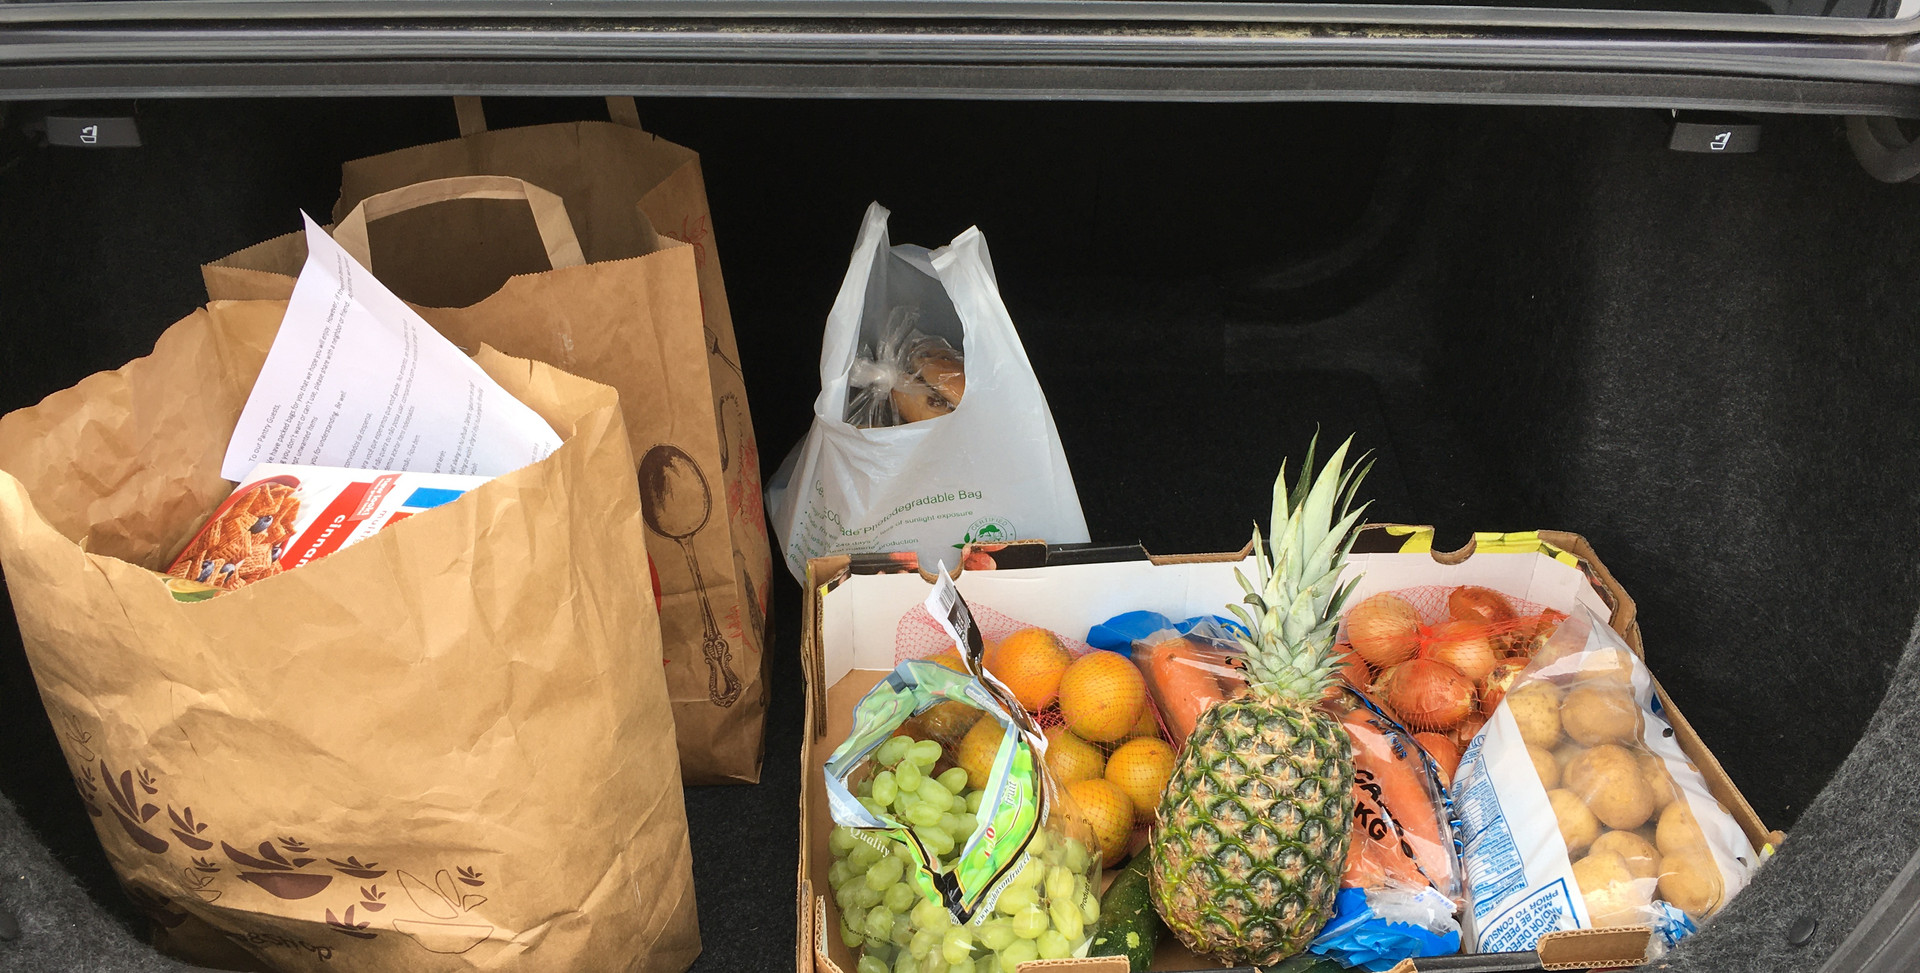 Our hands-free pick up system places groceries directly in the trunks of our client's ca